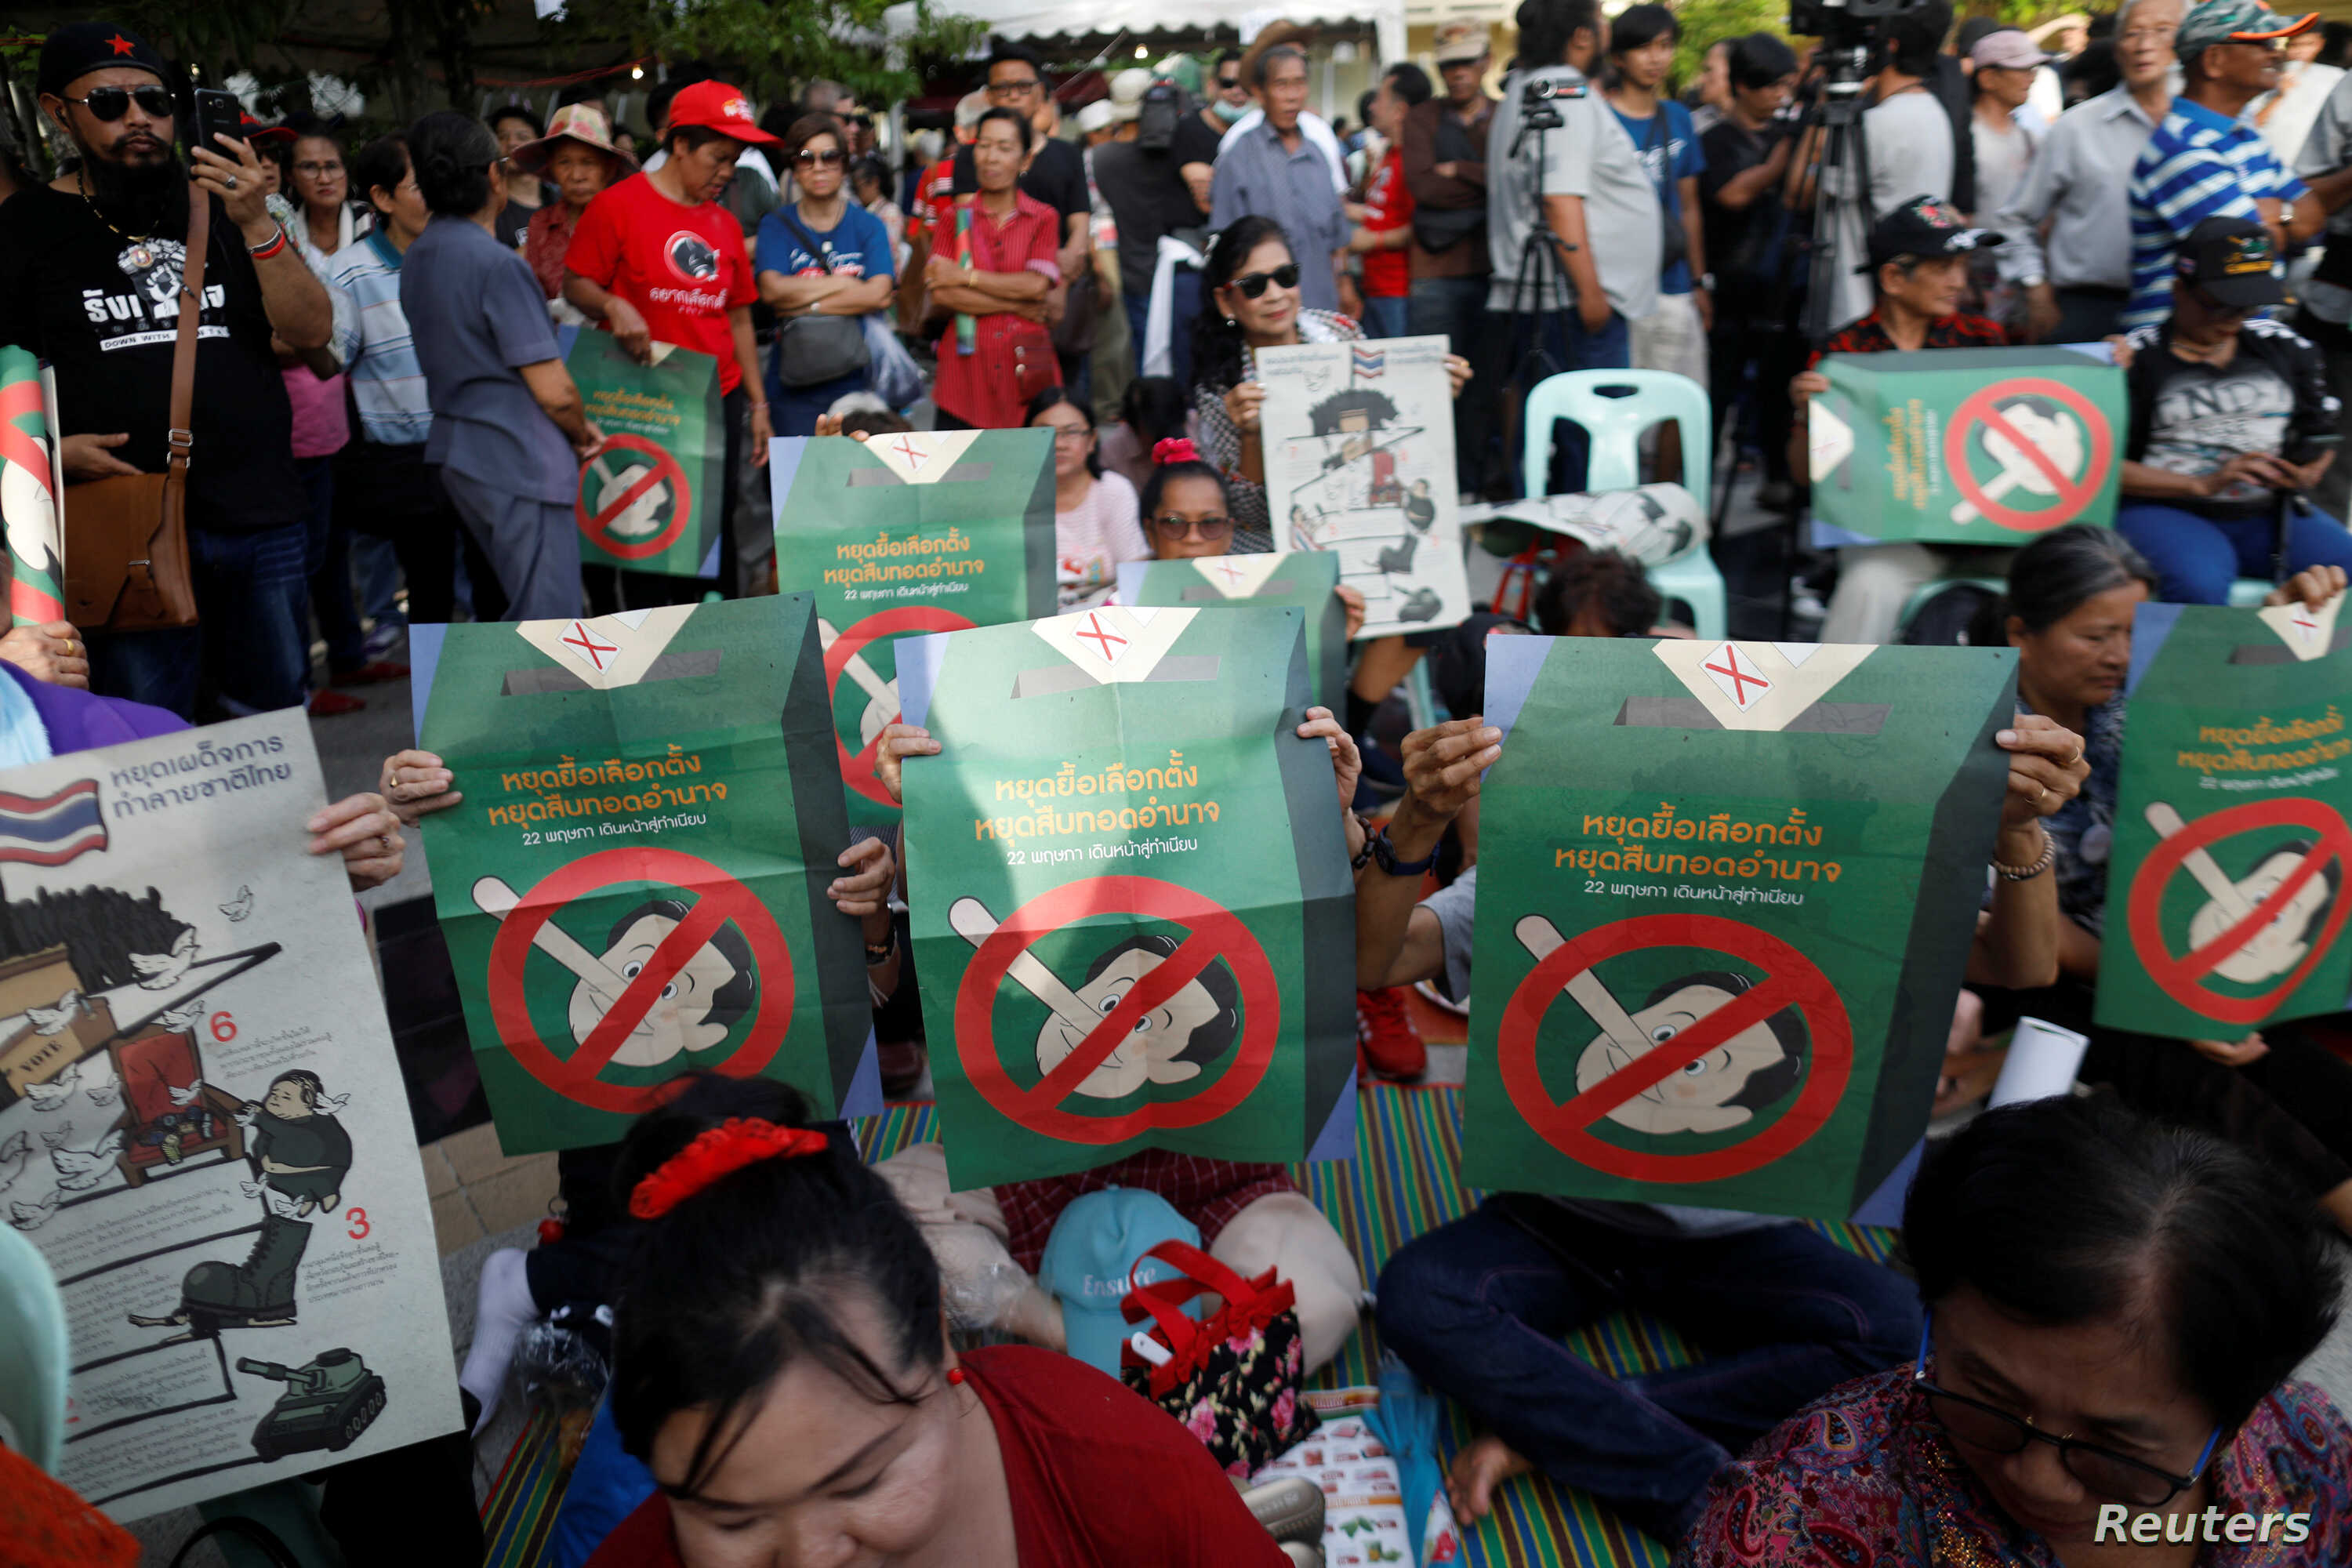 People protest against Thailand's Prime Minister Prayuth Chan-ocha in Bangkok, Thailand, May 5, 2018.